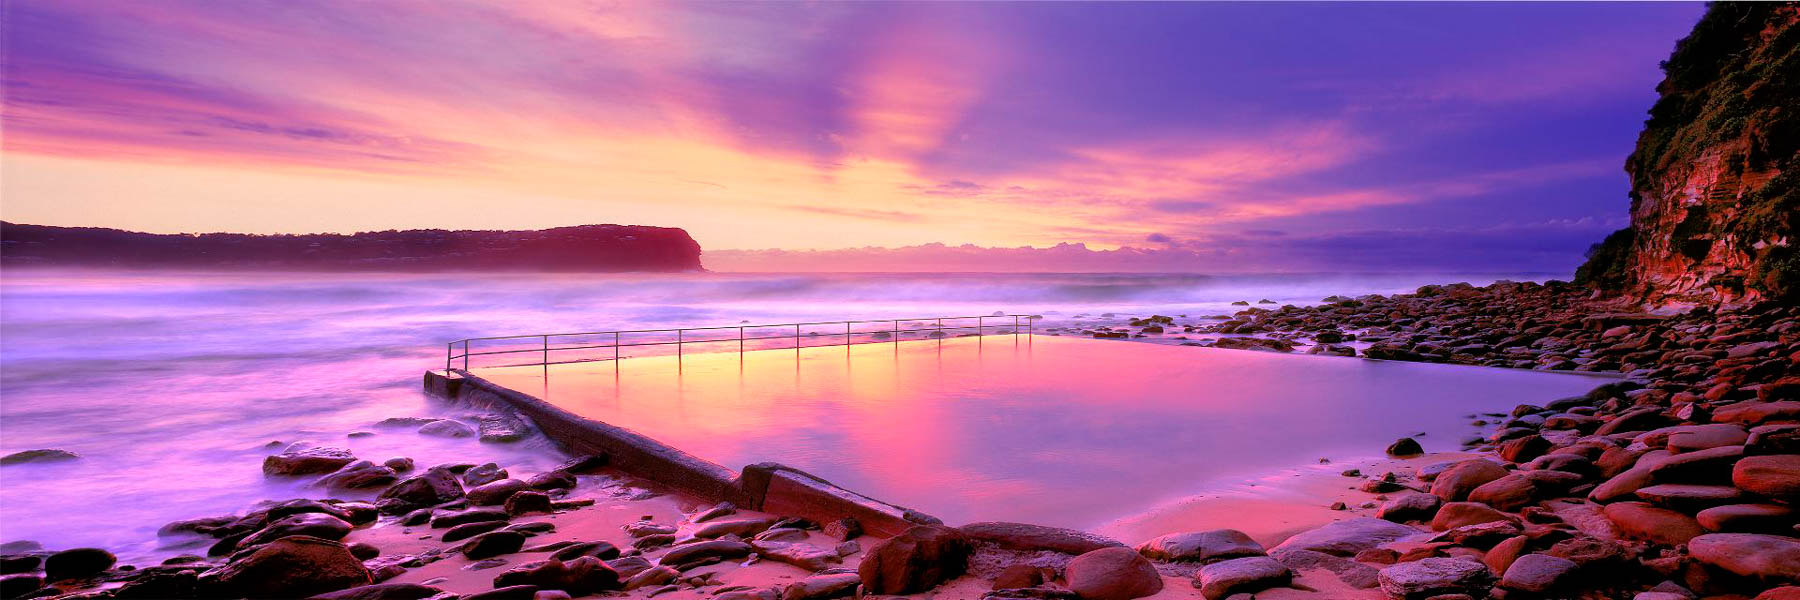 A gold and pastel sunrise reflecting in the sea pool, MacMasters Beach, Central Coast, NSW, Australia.